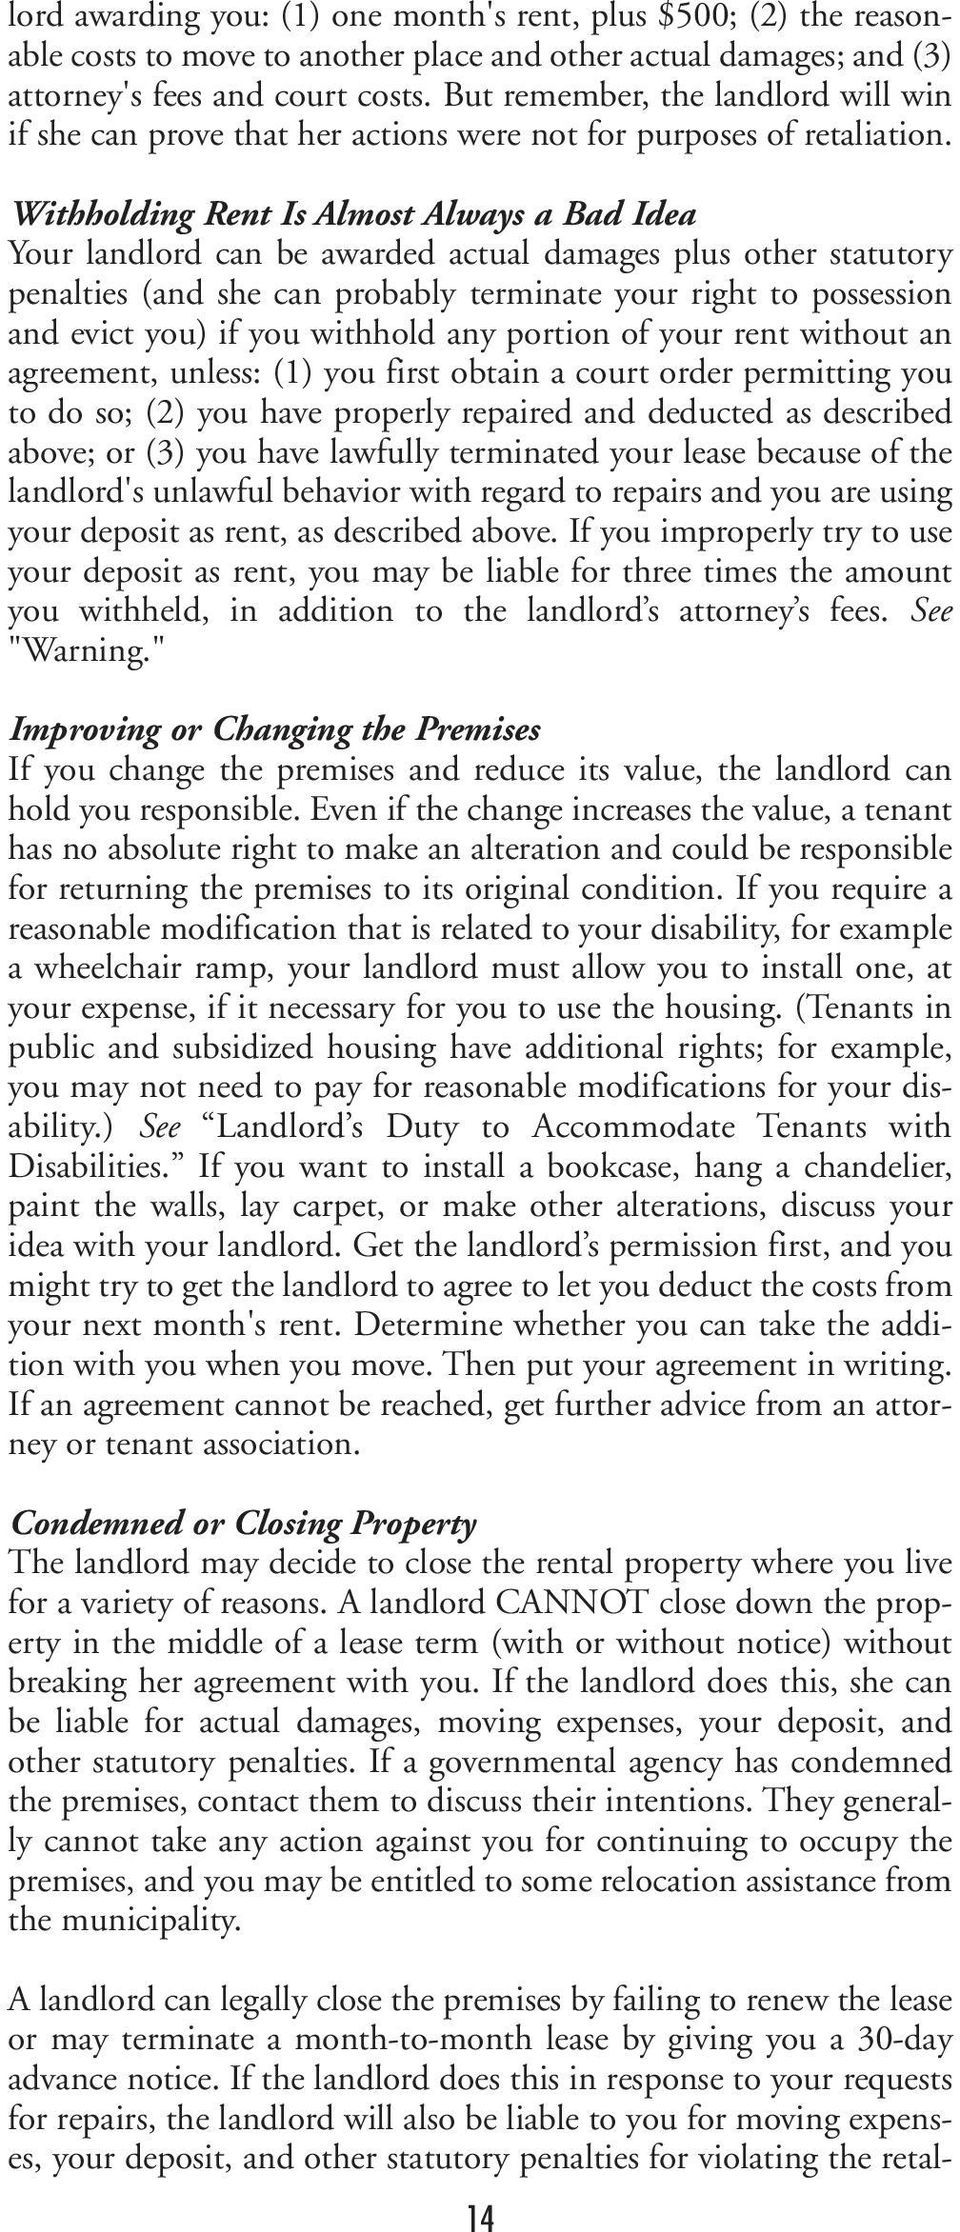 Withholding Rent Is Almost Always a Bad Idea Your landlord can be awarded actual damages plus other statutory penalties (and she can probably terminate your right to possession and evict you) if you